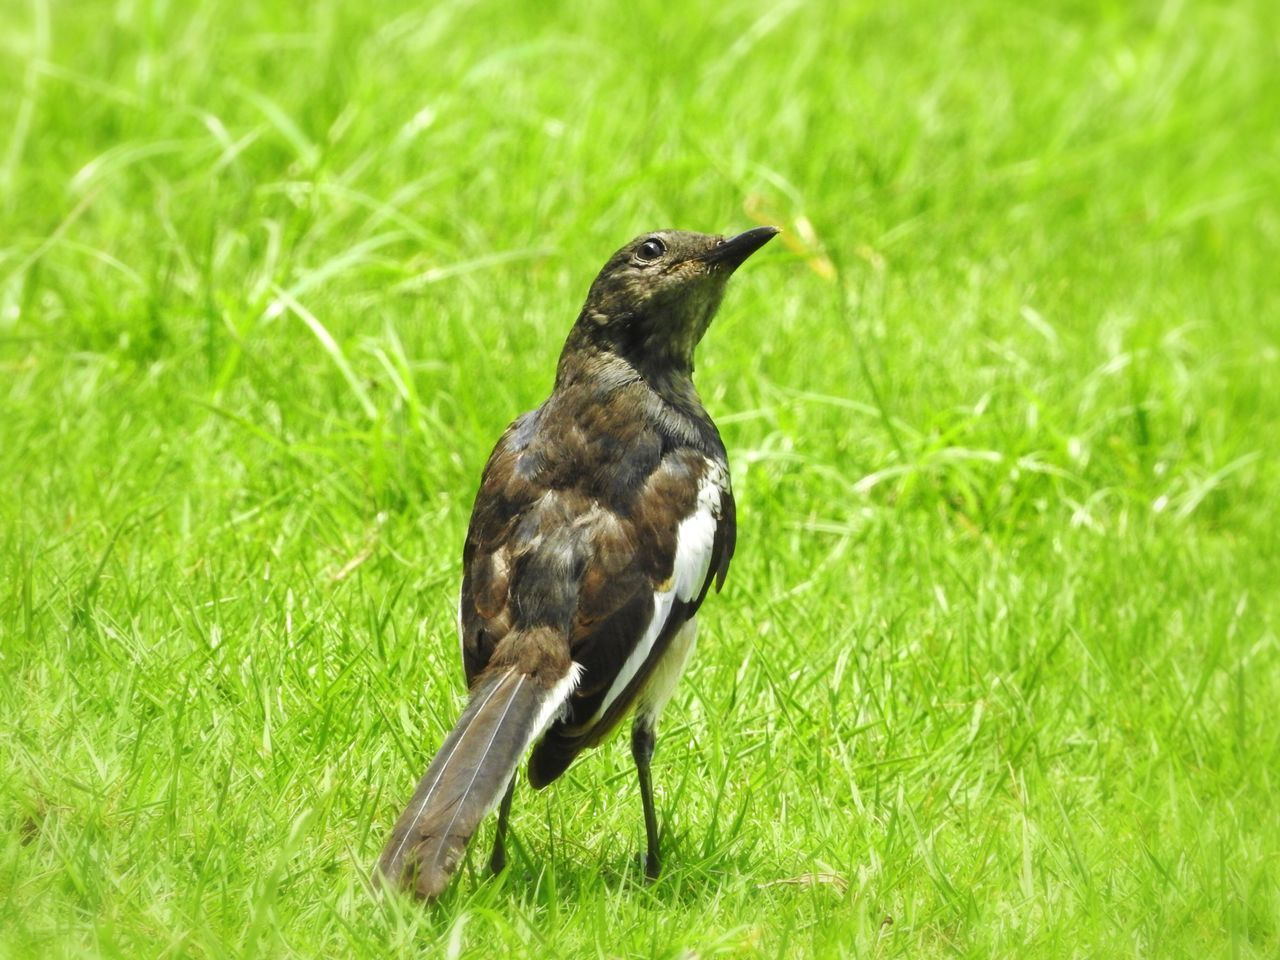 Grass Bird Animal Themes One Animal Animals In The Wild Green Color Nature Field Animal Wildlife No People Growth Day Outdoors Perching Close-up